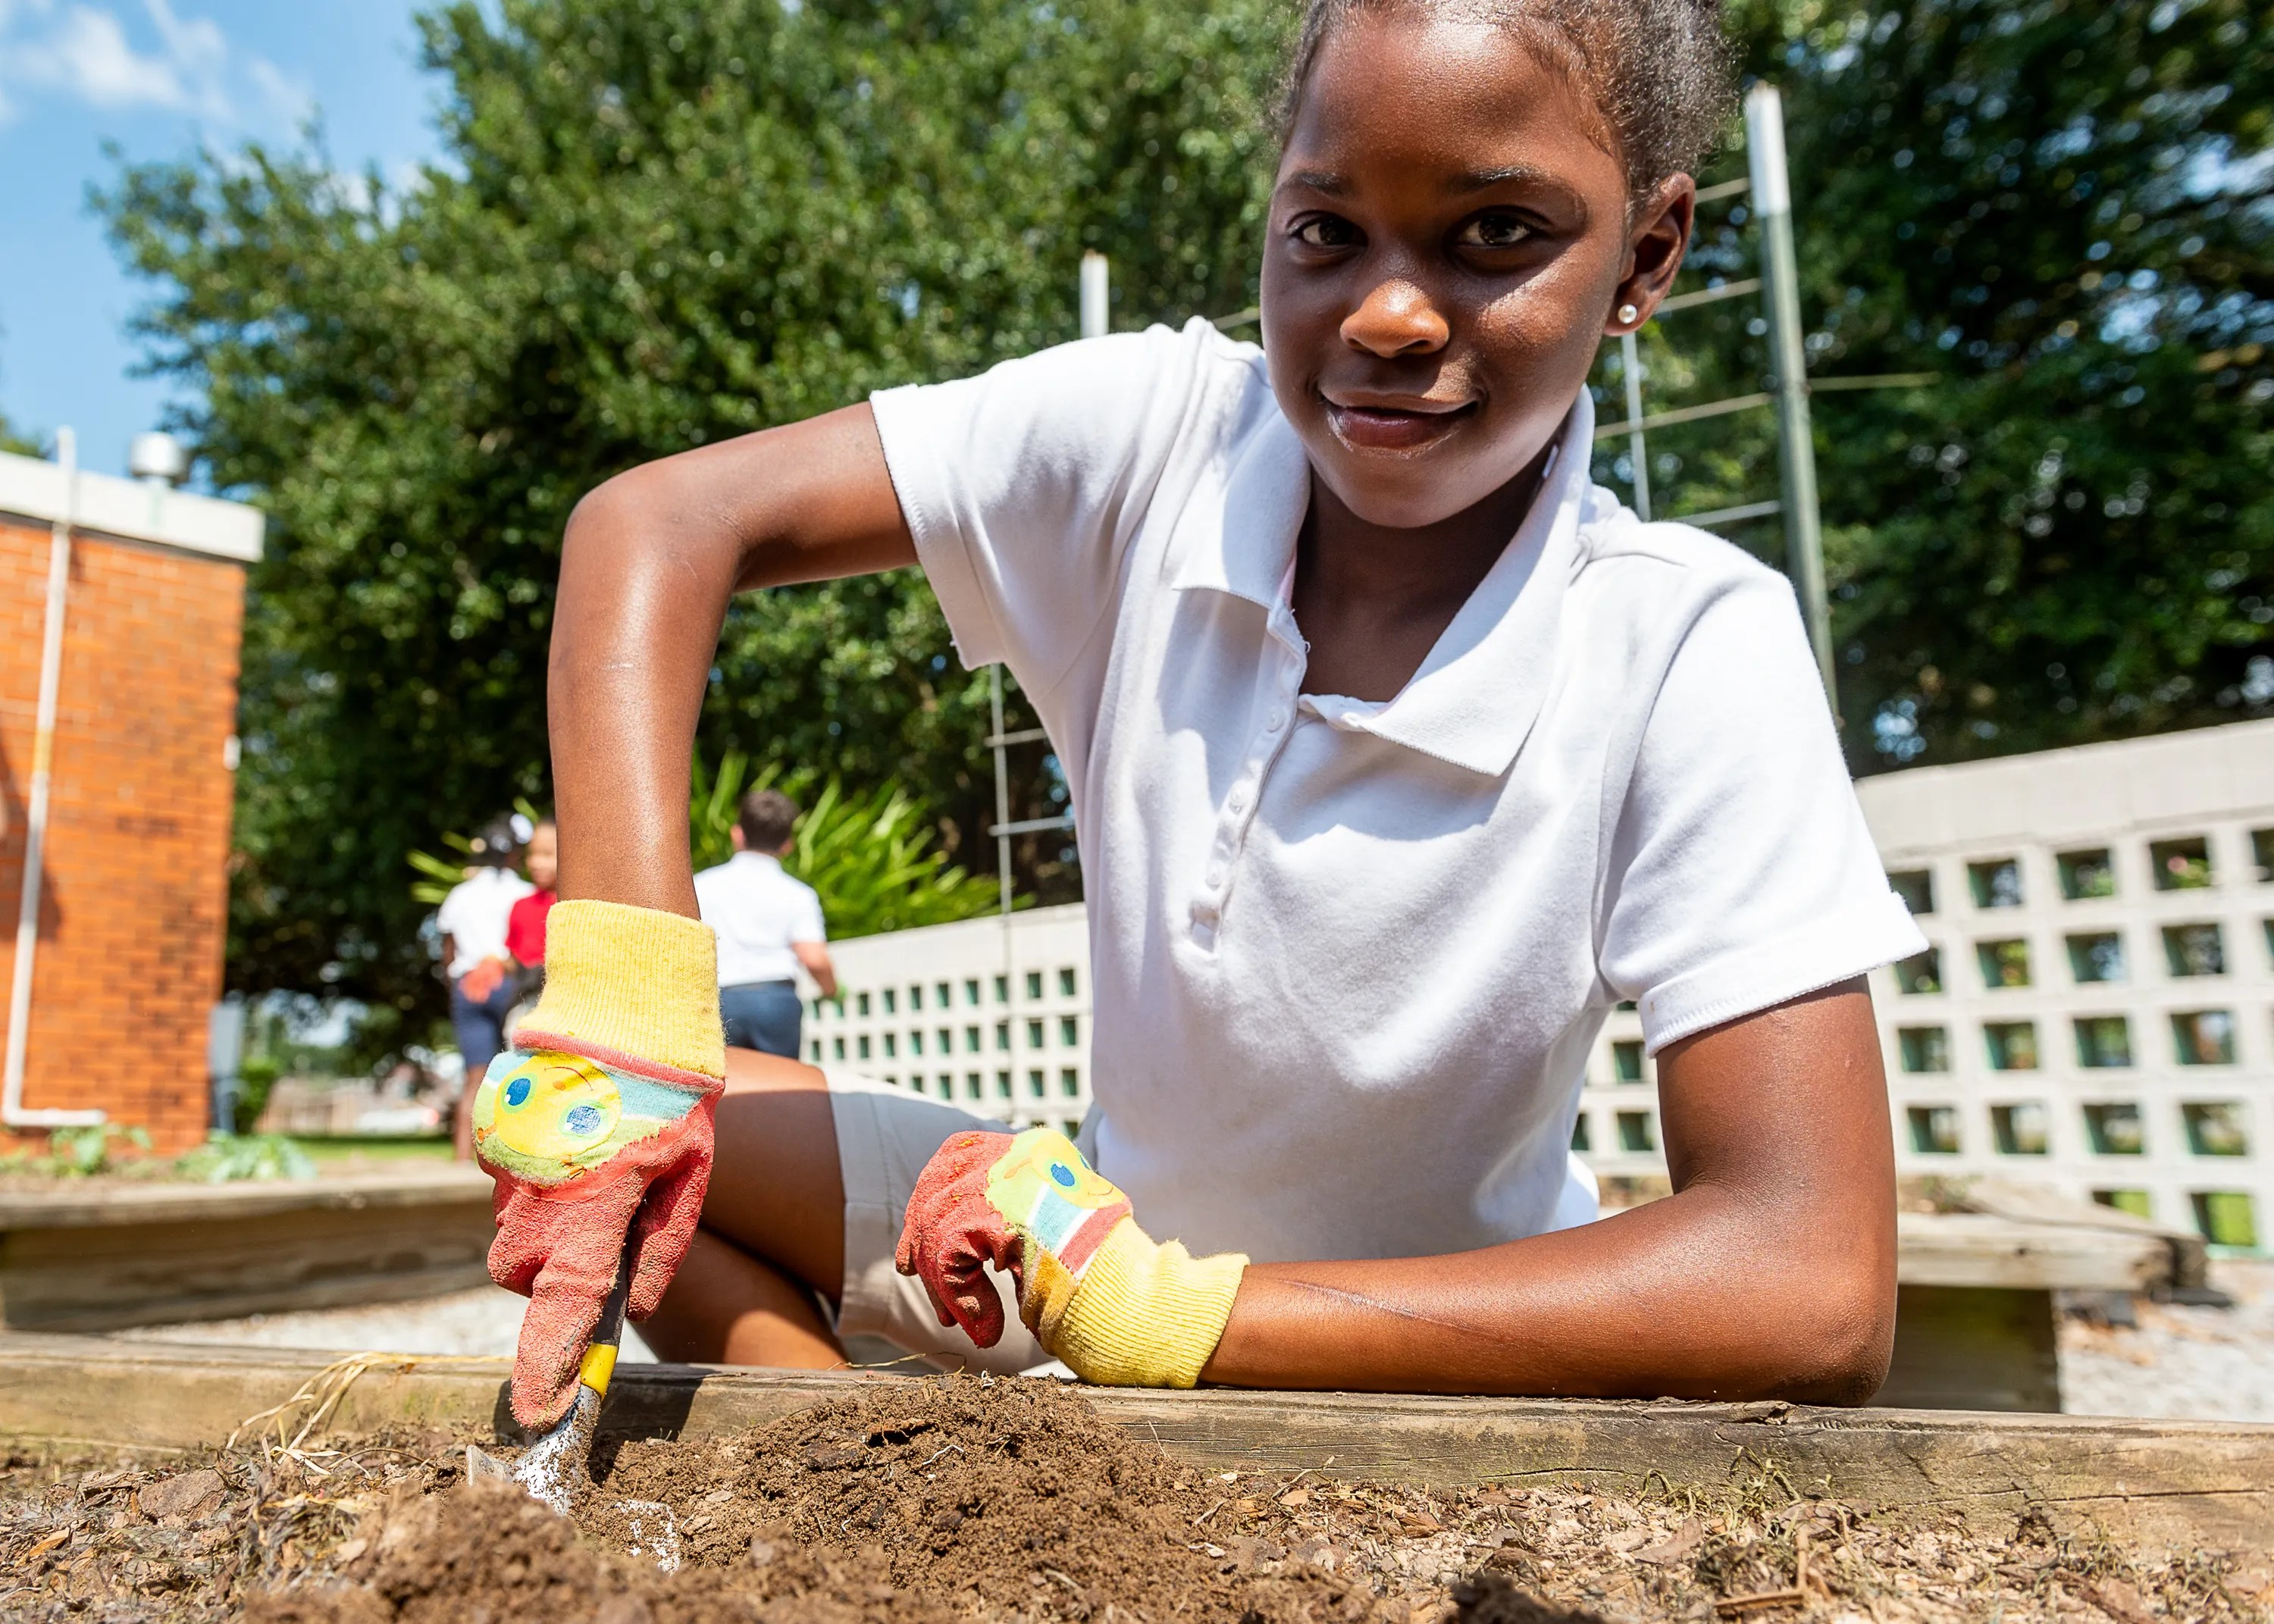 Jariah Wilson, a student at  James A. Herod Elementary, works in the school's garden in Abbeville Wednesday, Oct. 2, 2019.